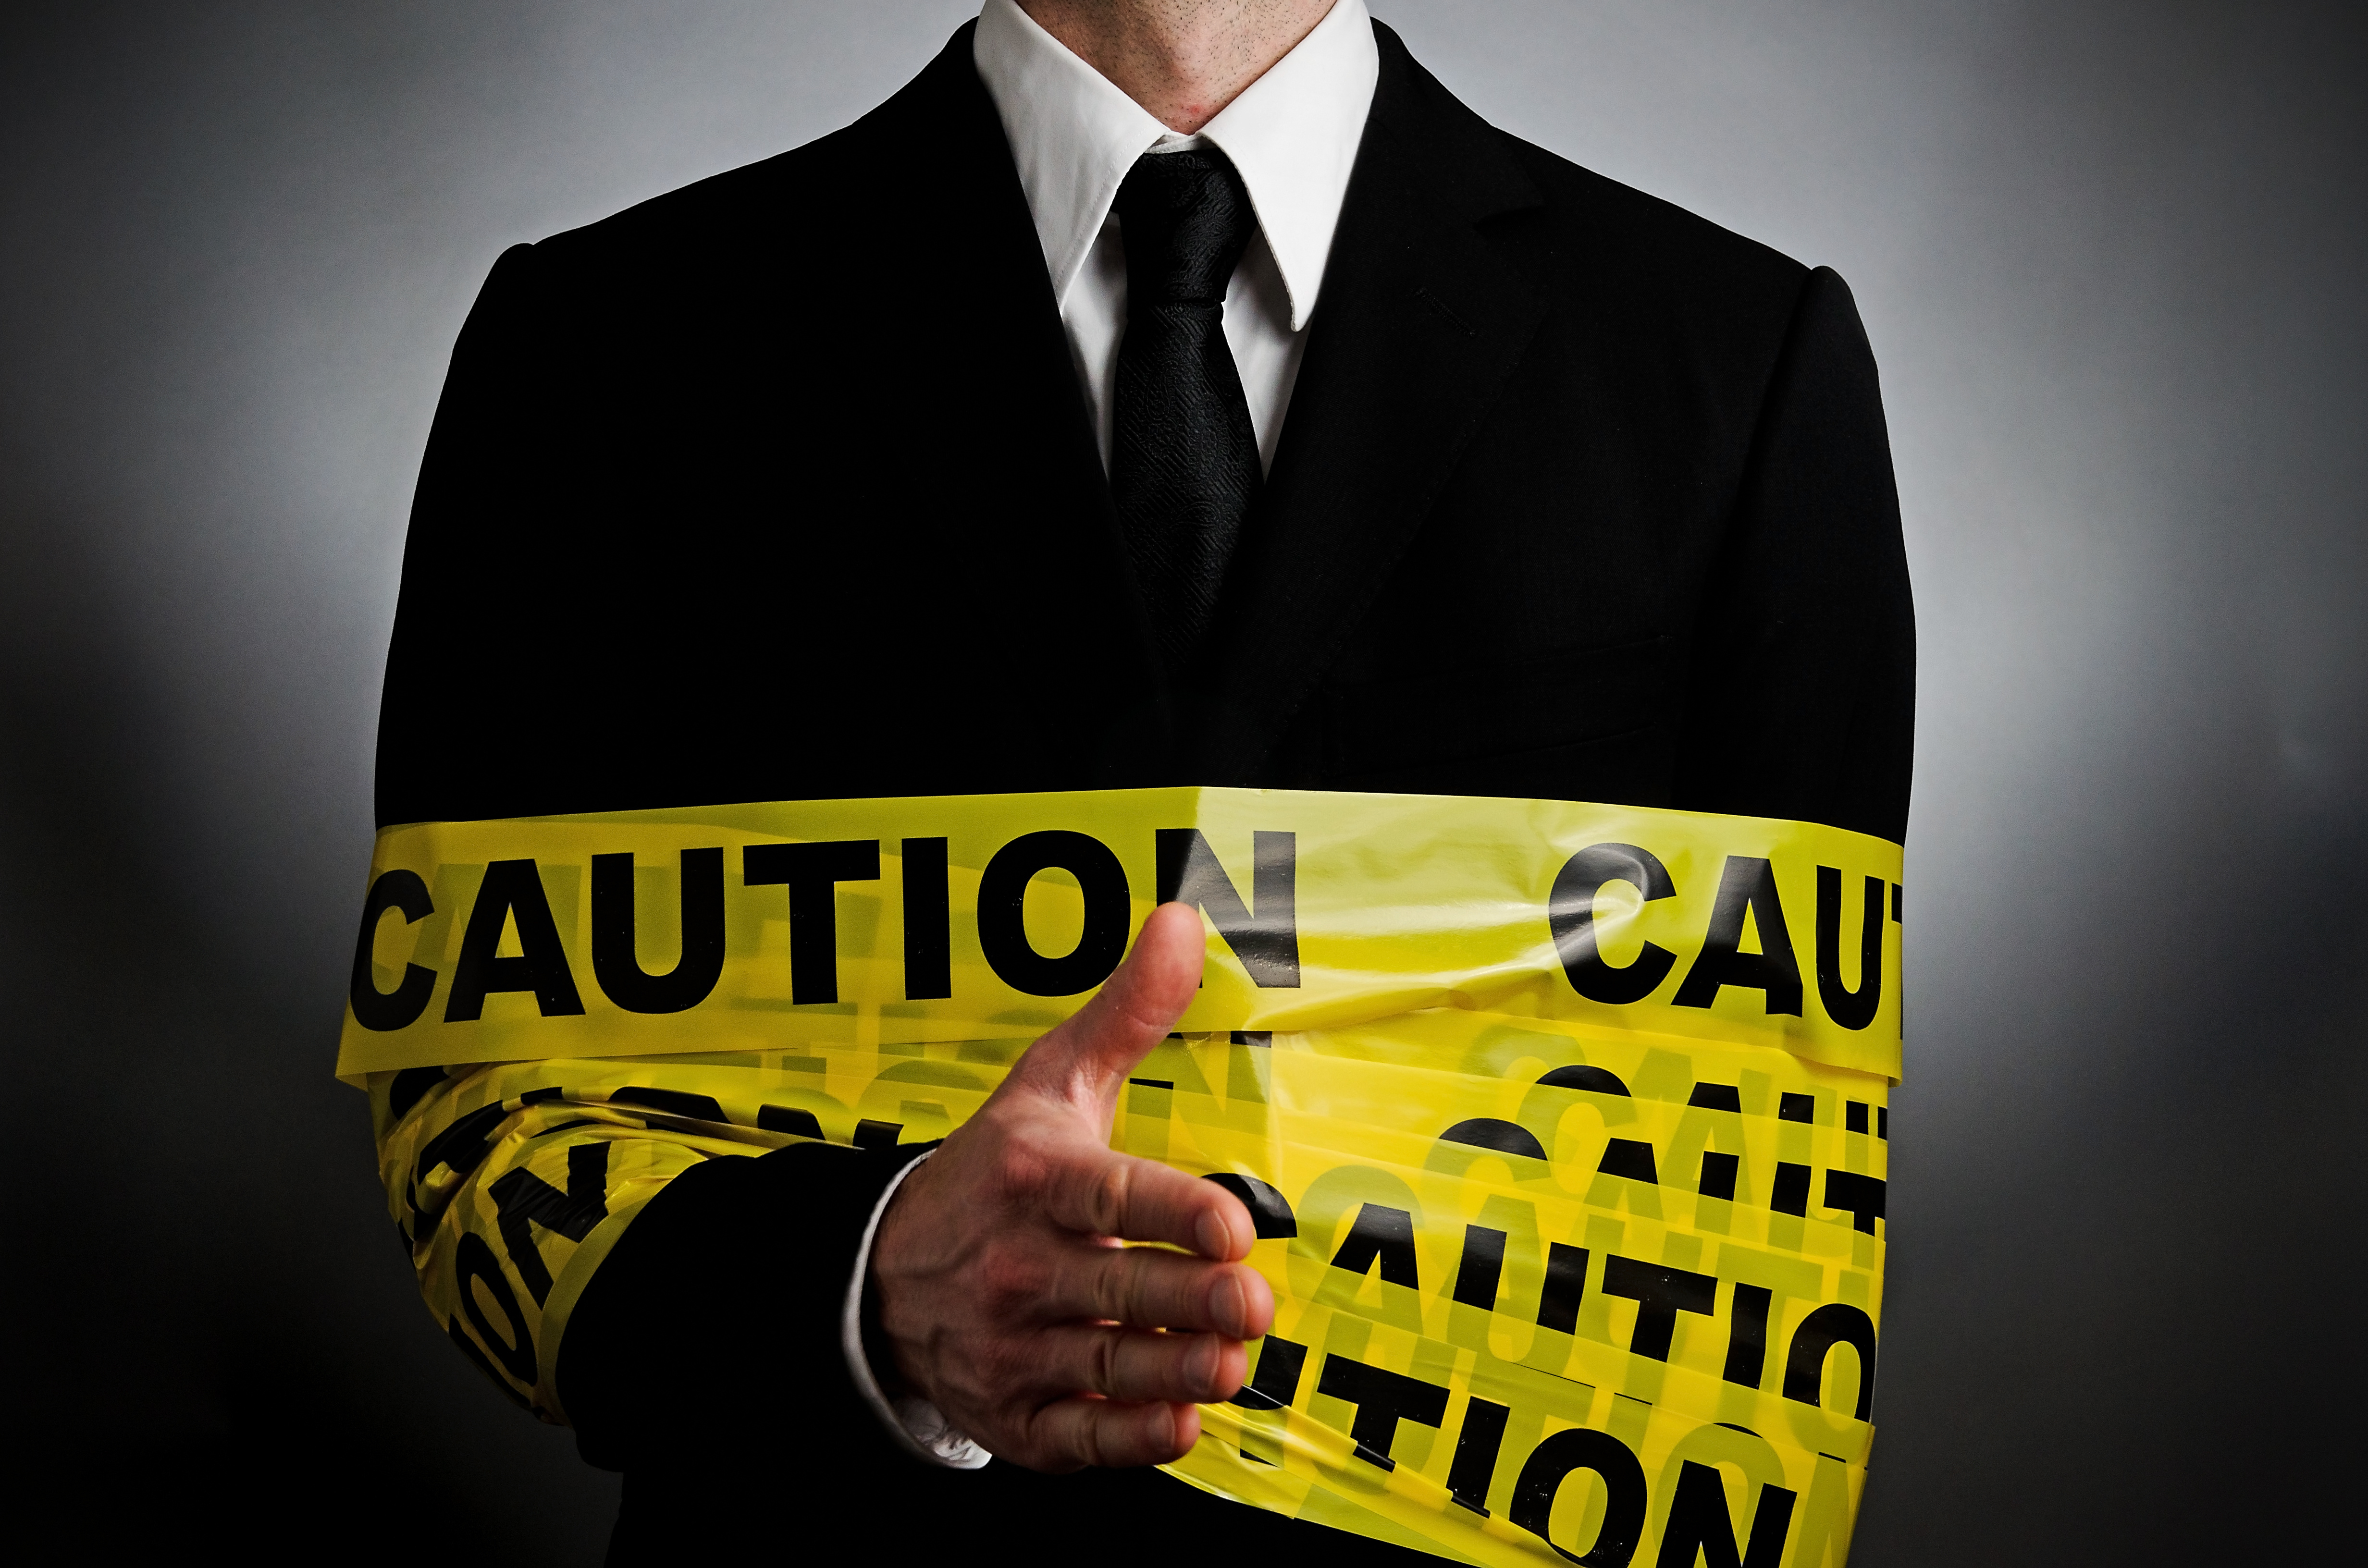 Employee wrapped in caution tape representing an internal threat. Demonstrating the need for the Zero Trust model to protect against internal threats.